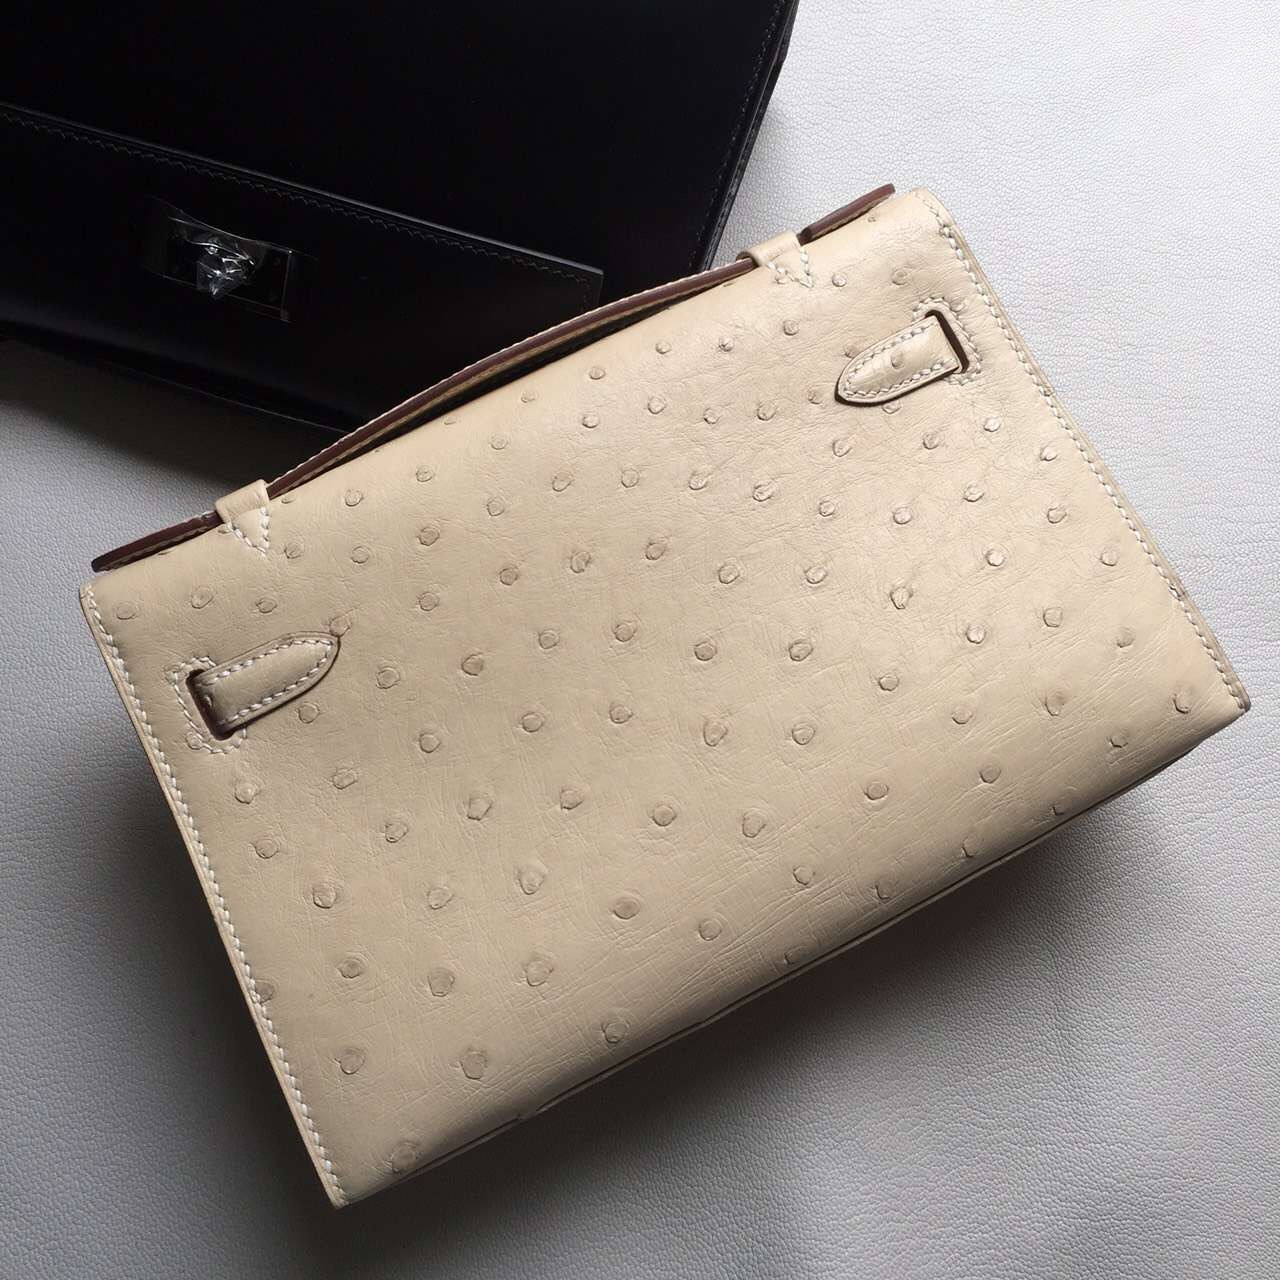 Discount Hermes Minikelly22cm 3C Wool White Ostrich Leather Silver Hardware